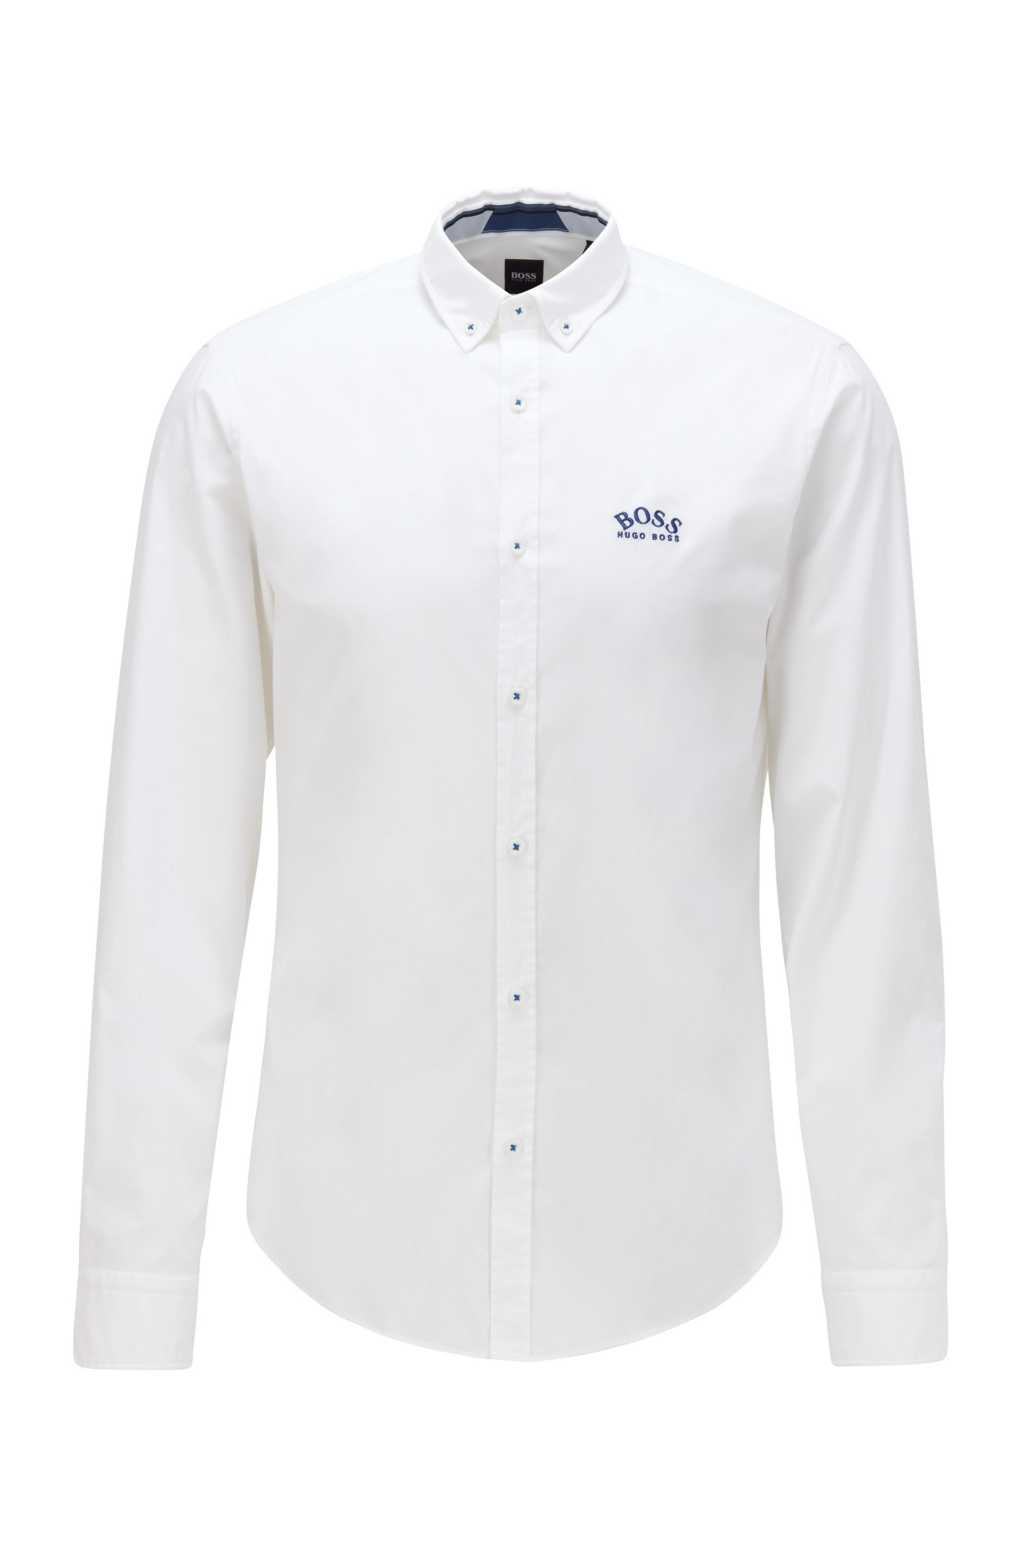 BOSS White Regular-Fit Button-Down Shirt In Stretch-Cotton Poplin